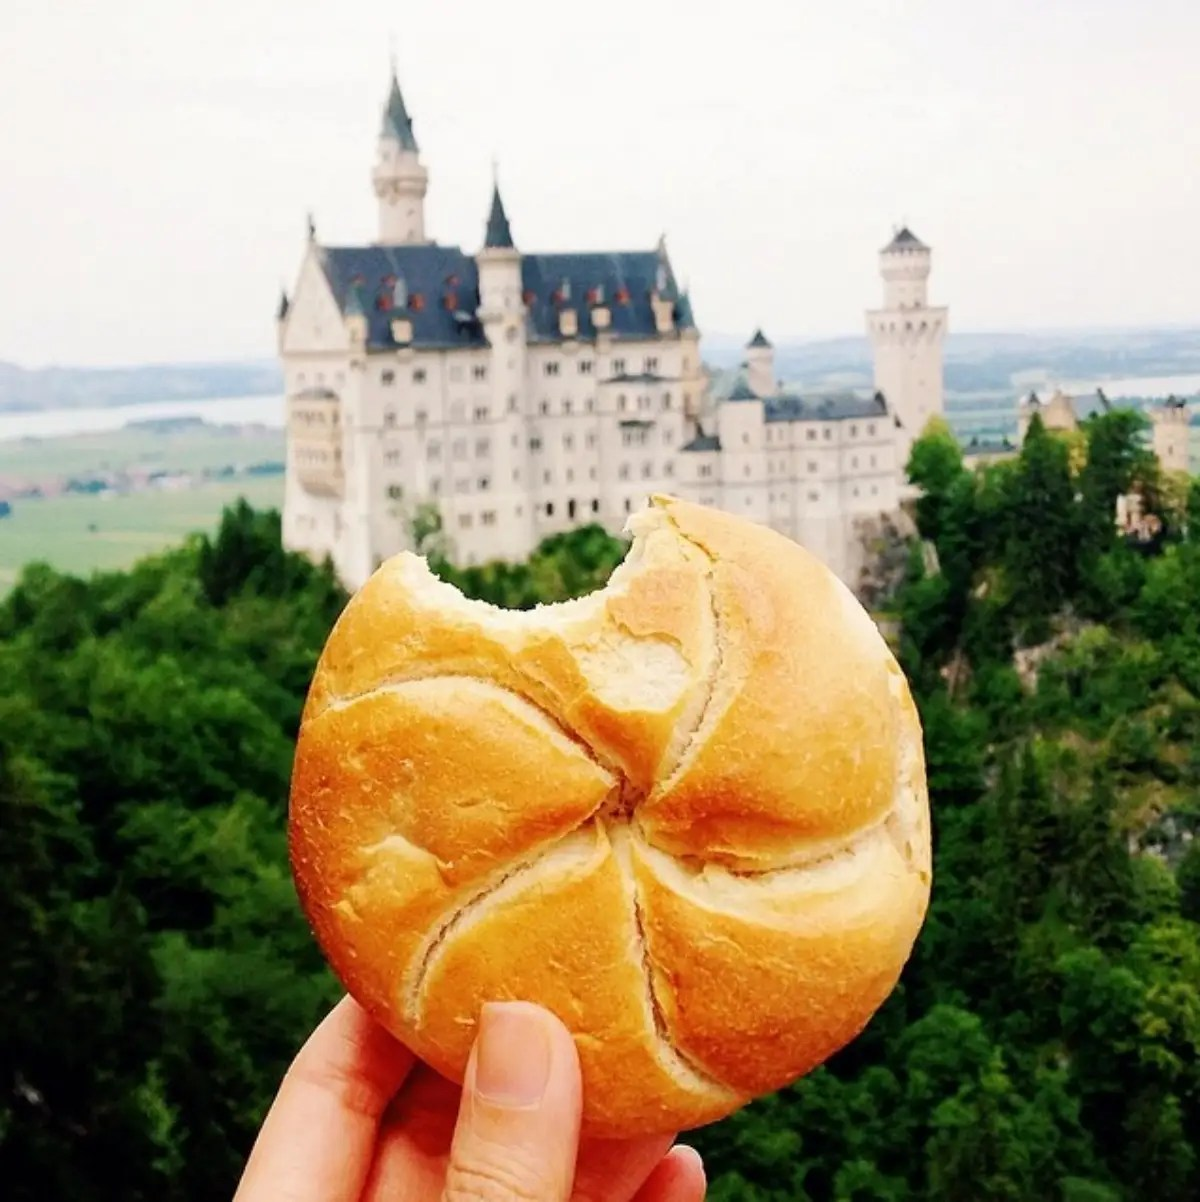 Simple bread roll at Neuschwanstein castle (aka the real life Cinderella castle) in Germany.